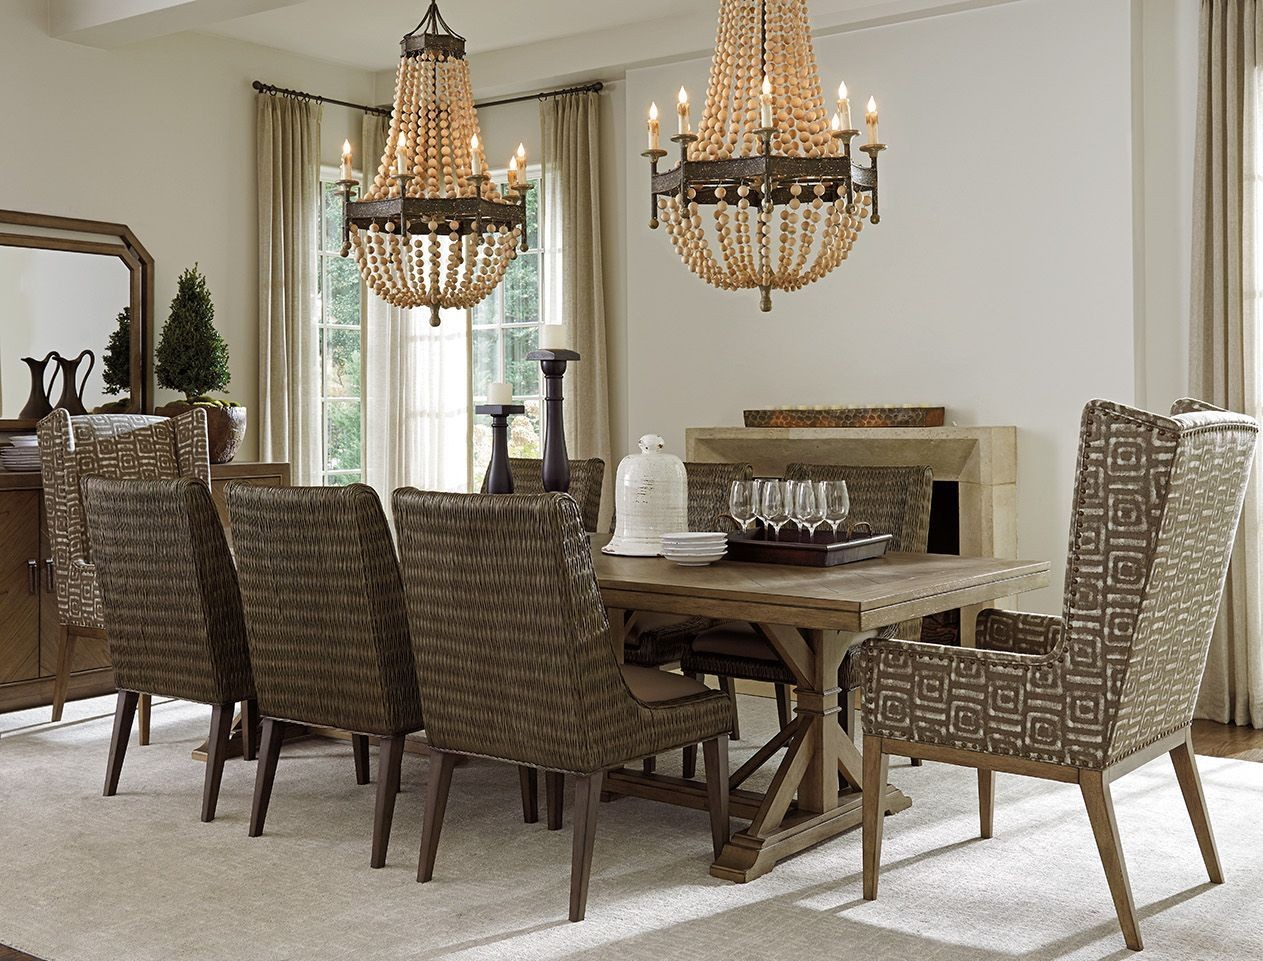 cypress point pierpoint extendable rectangular dining table 01 0561 876c tommy bahama. Black Bedroom Furniture Sets. Home Design Ideas